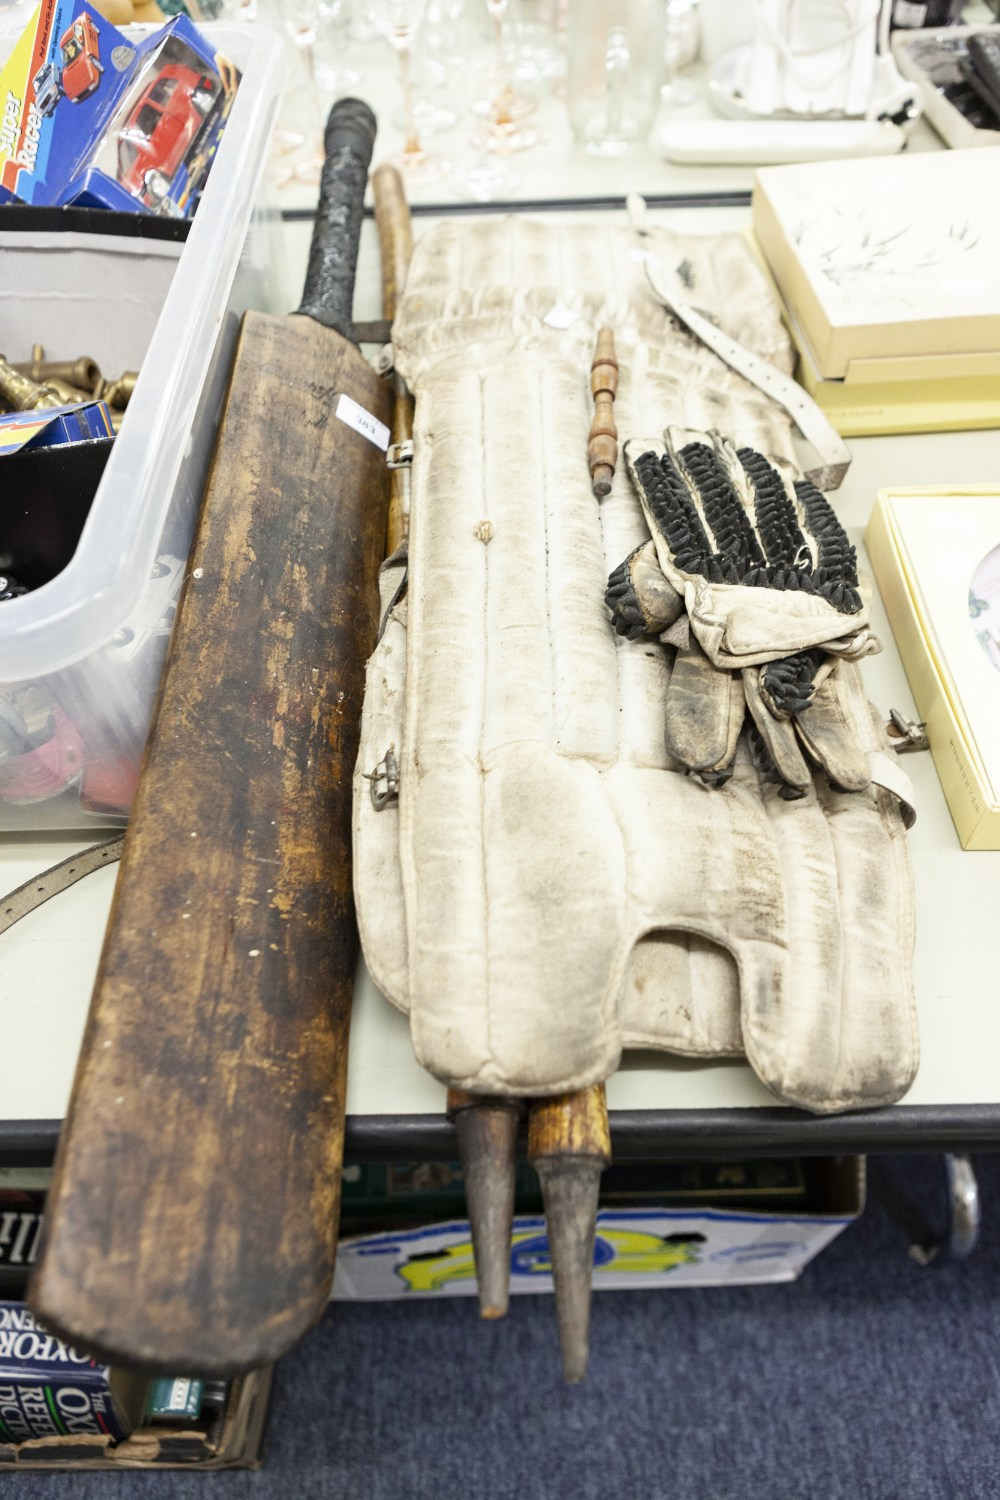 Lot 383 - WARSOP AND HENDREN - POST WAR AUTOGRAPHED CRICKET BAT, in well used condition, TOGETHER WITH A SET